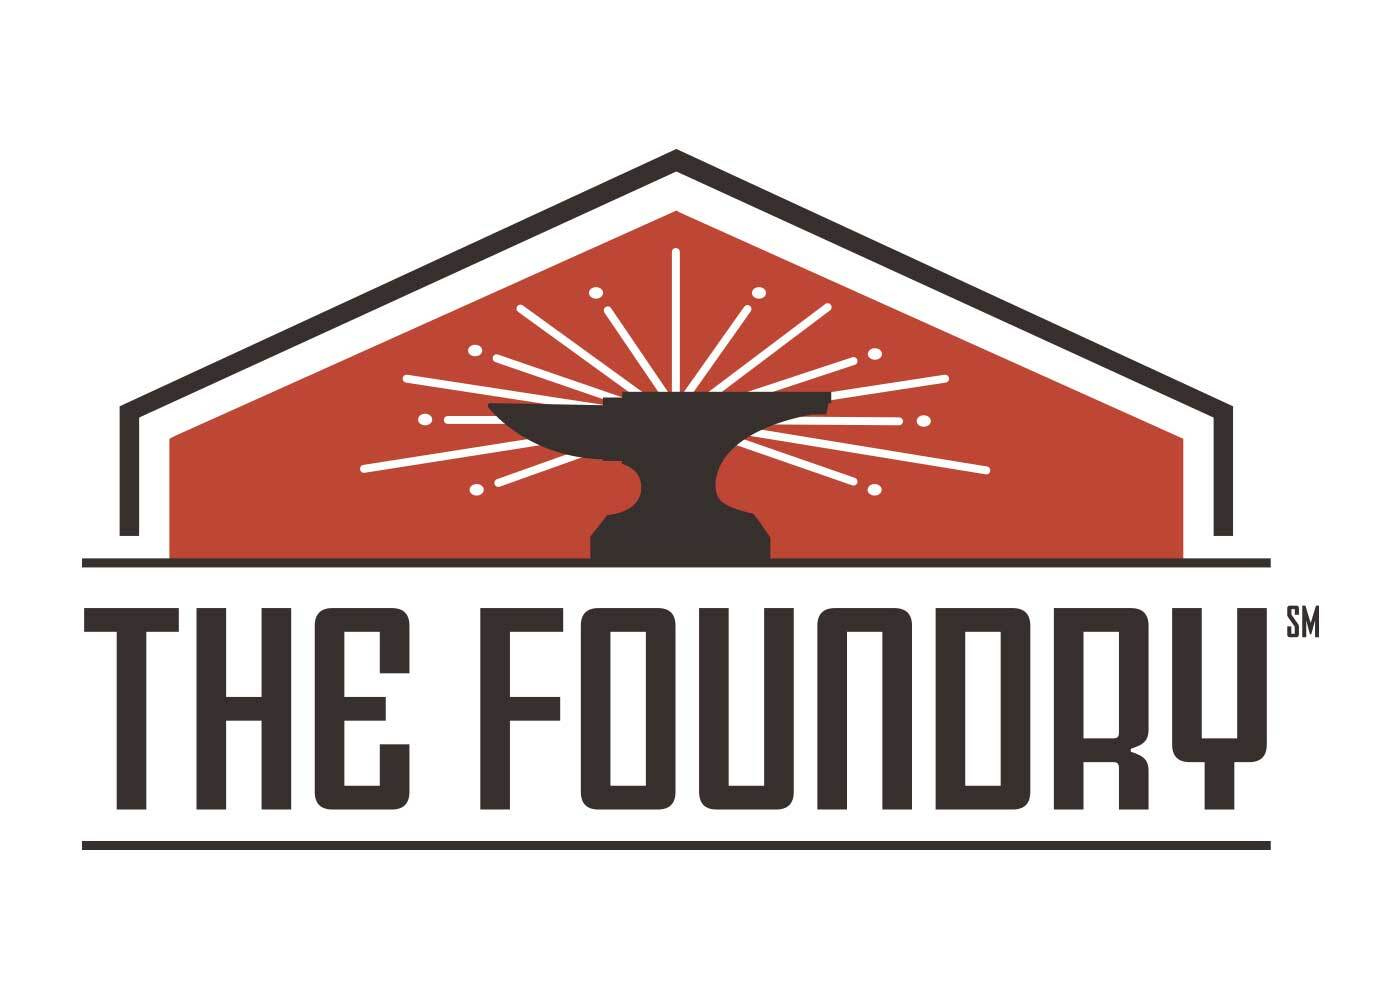 Treystar The Foundry logo - Identity